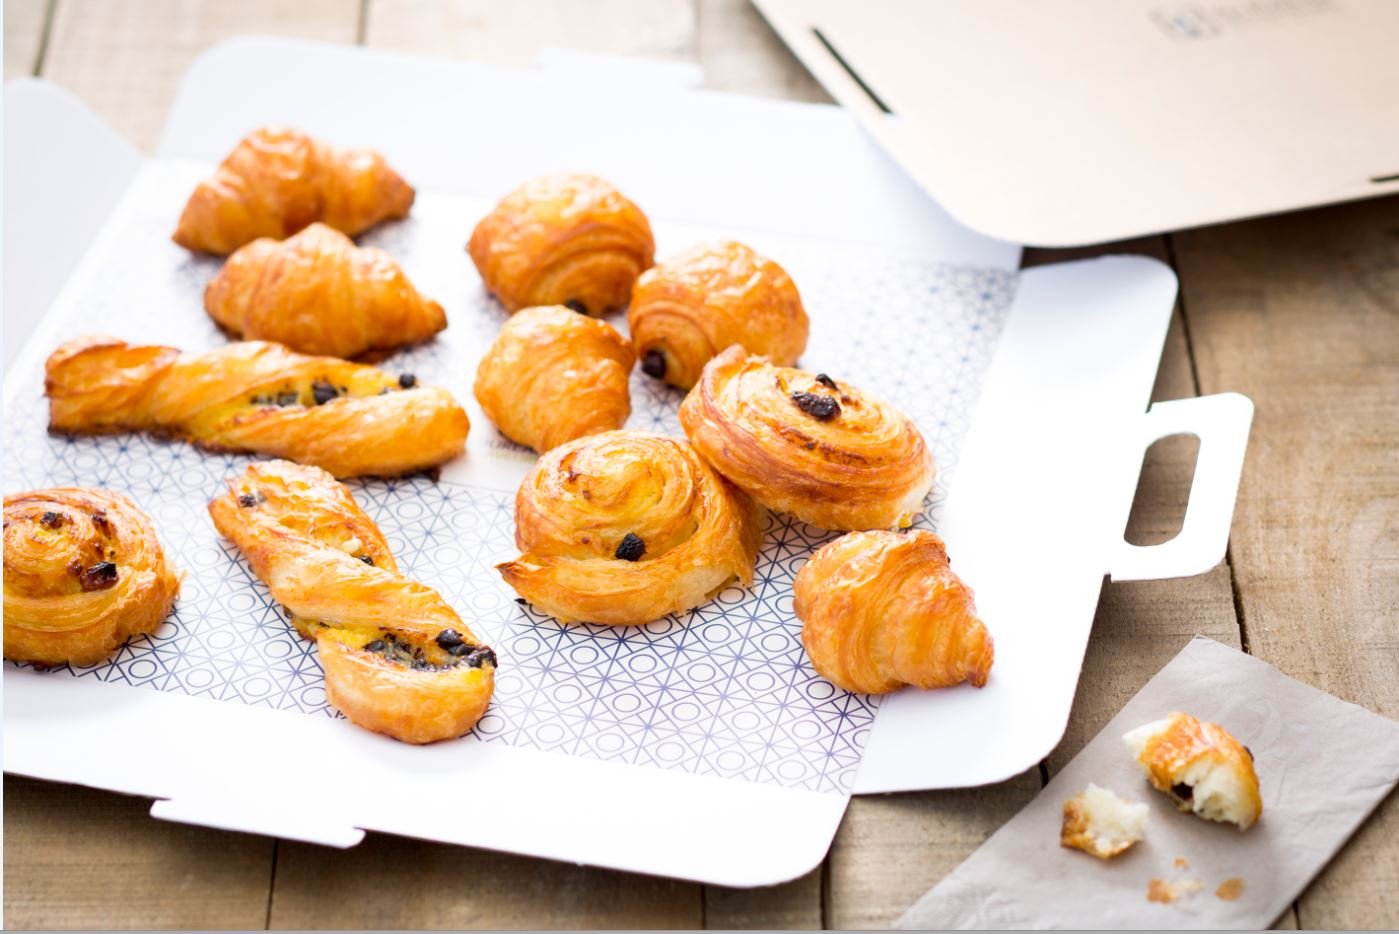 MINI VIENNOISERIES